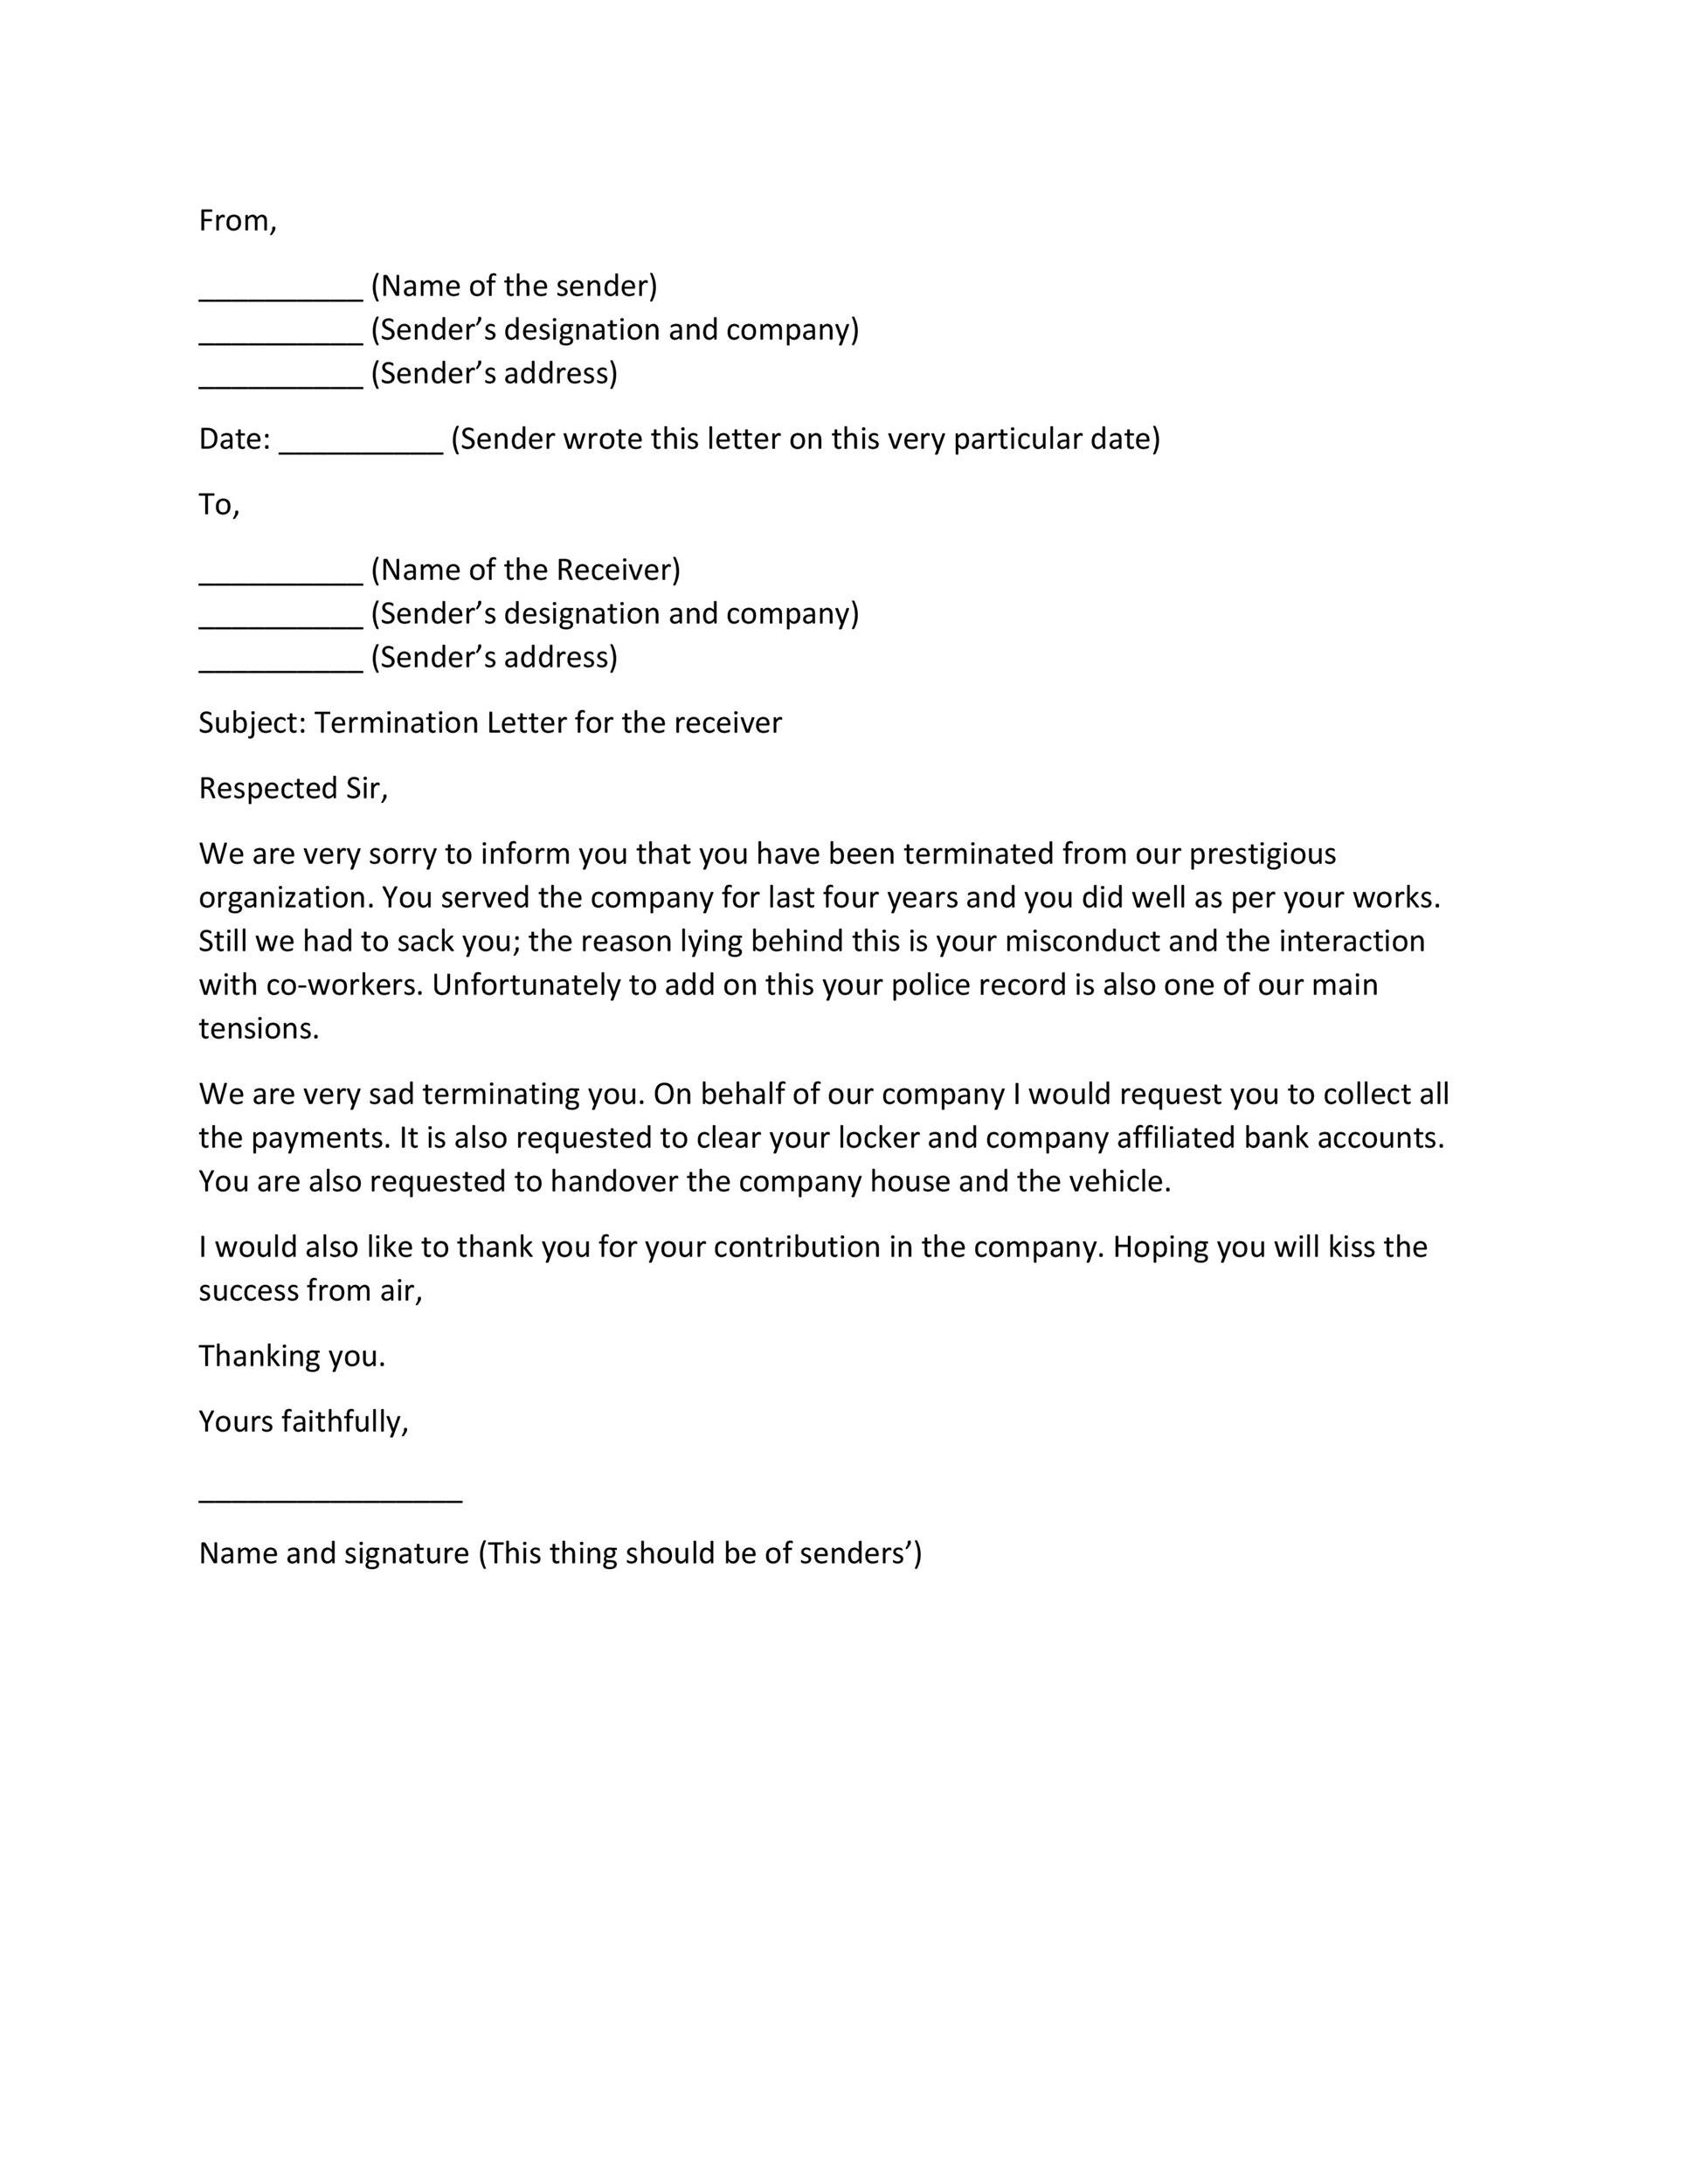 35 Perfect Termination Letter Samples Lease, Employee, Contract - company termination letter